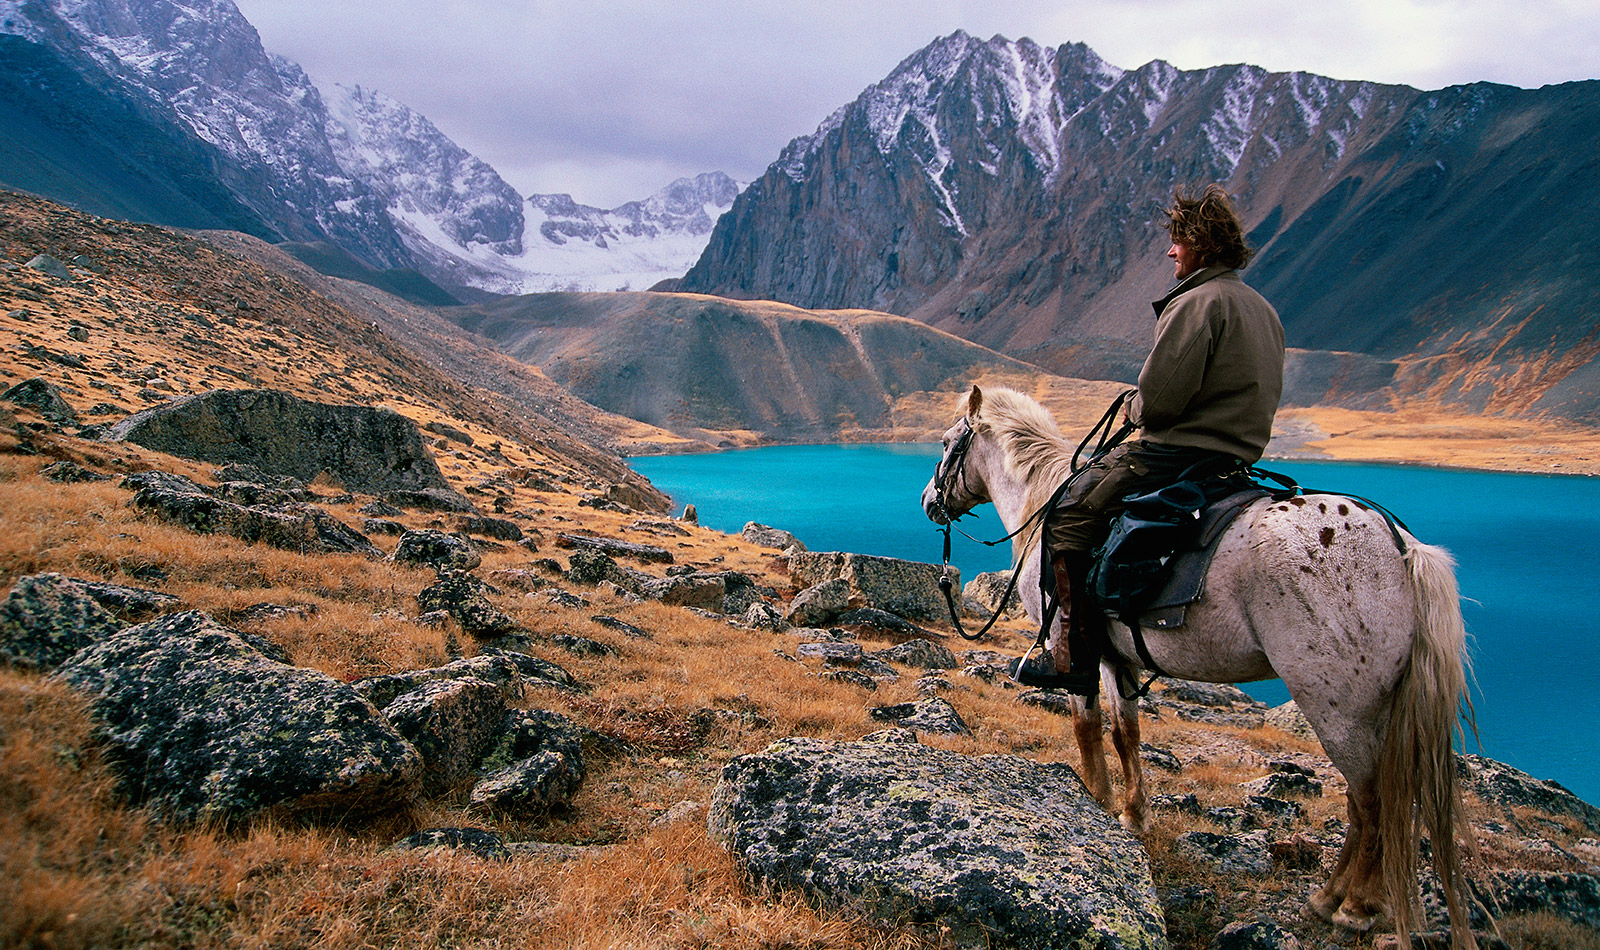 Tim Cope on the trail of Genghis Khan